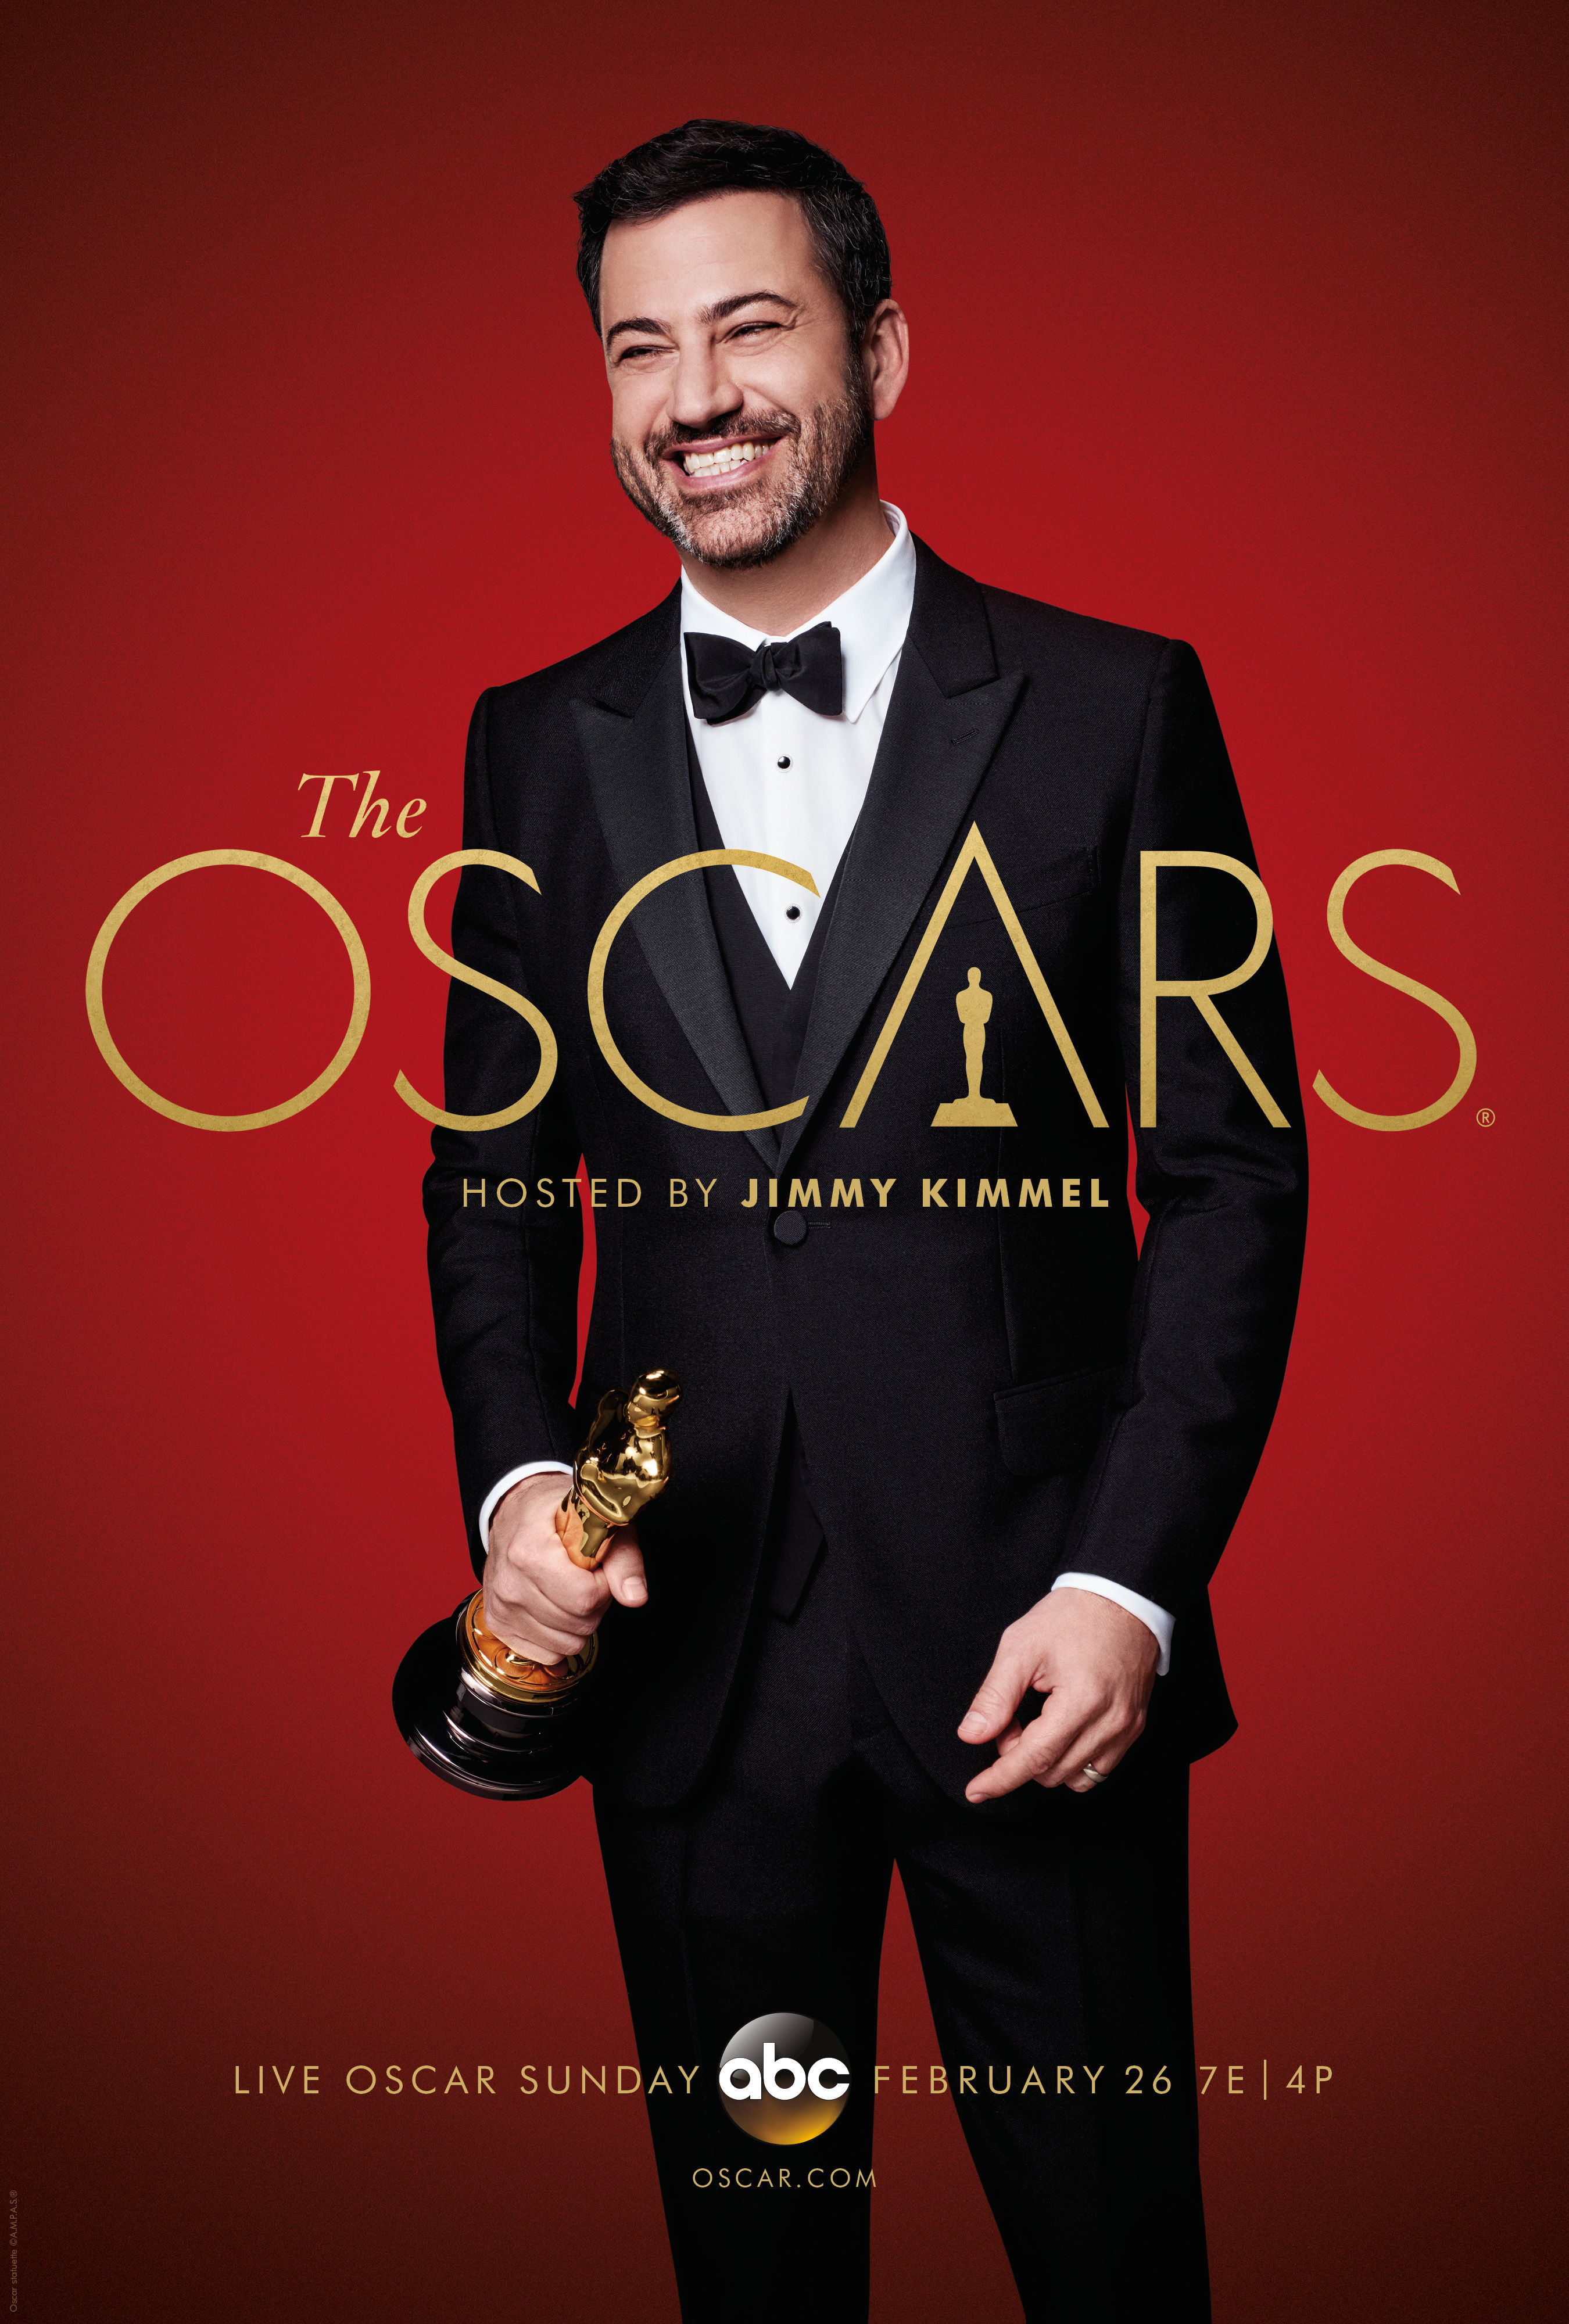 Image result for oscars 2017 poster